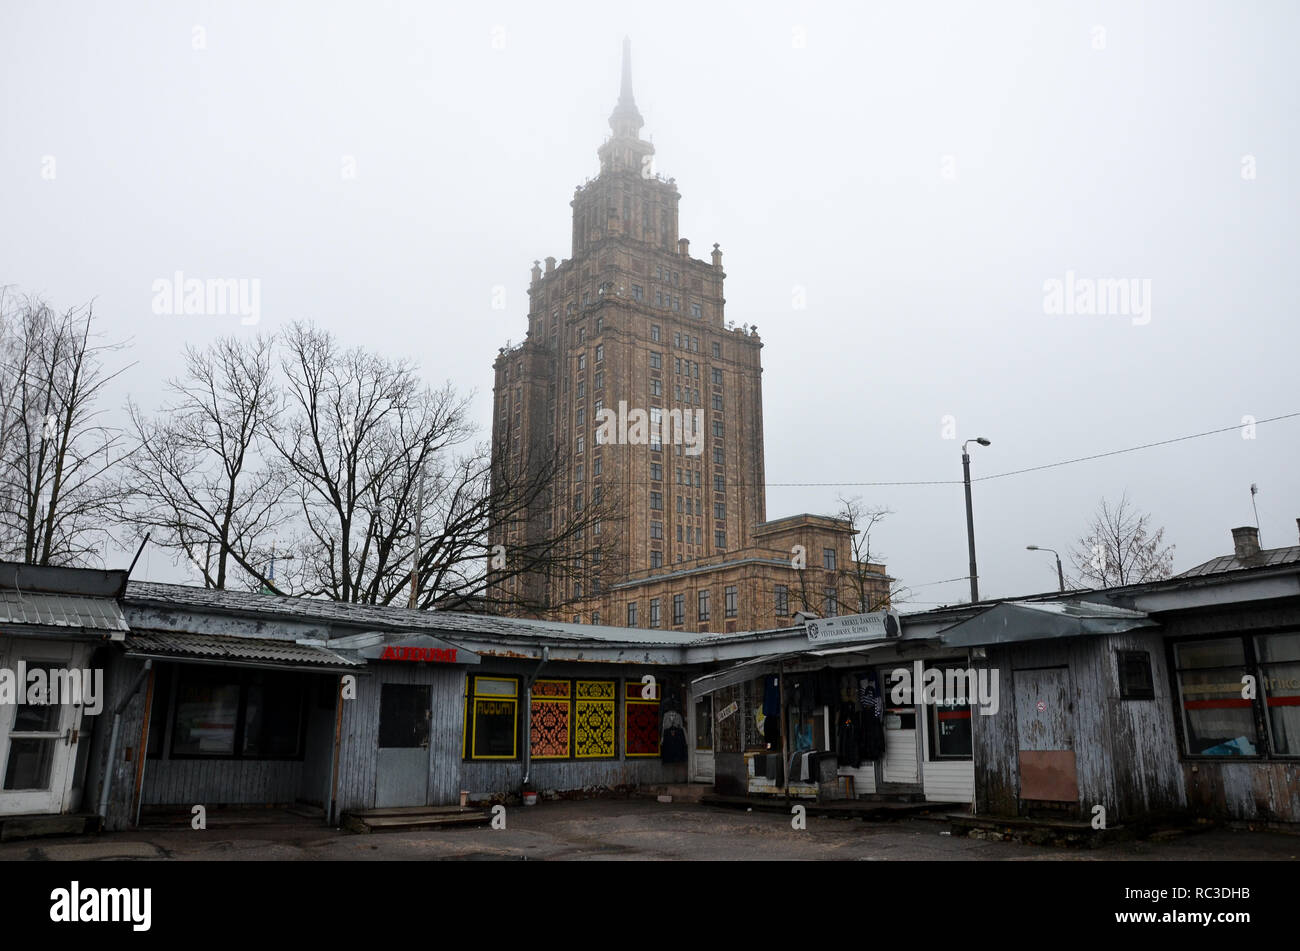 Exterior of Latvian Academy of Sciences, built between 1951 and 1961 in the Stalinist style, Riga, Republic of Latvia, Baltics, December 2018 - Stock Image